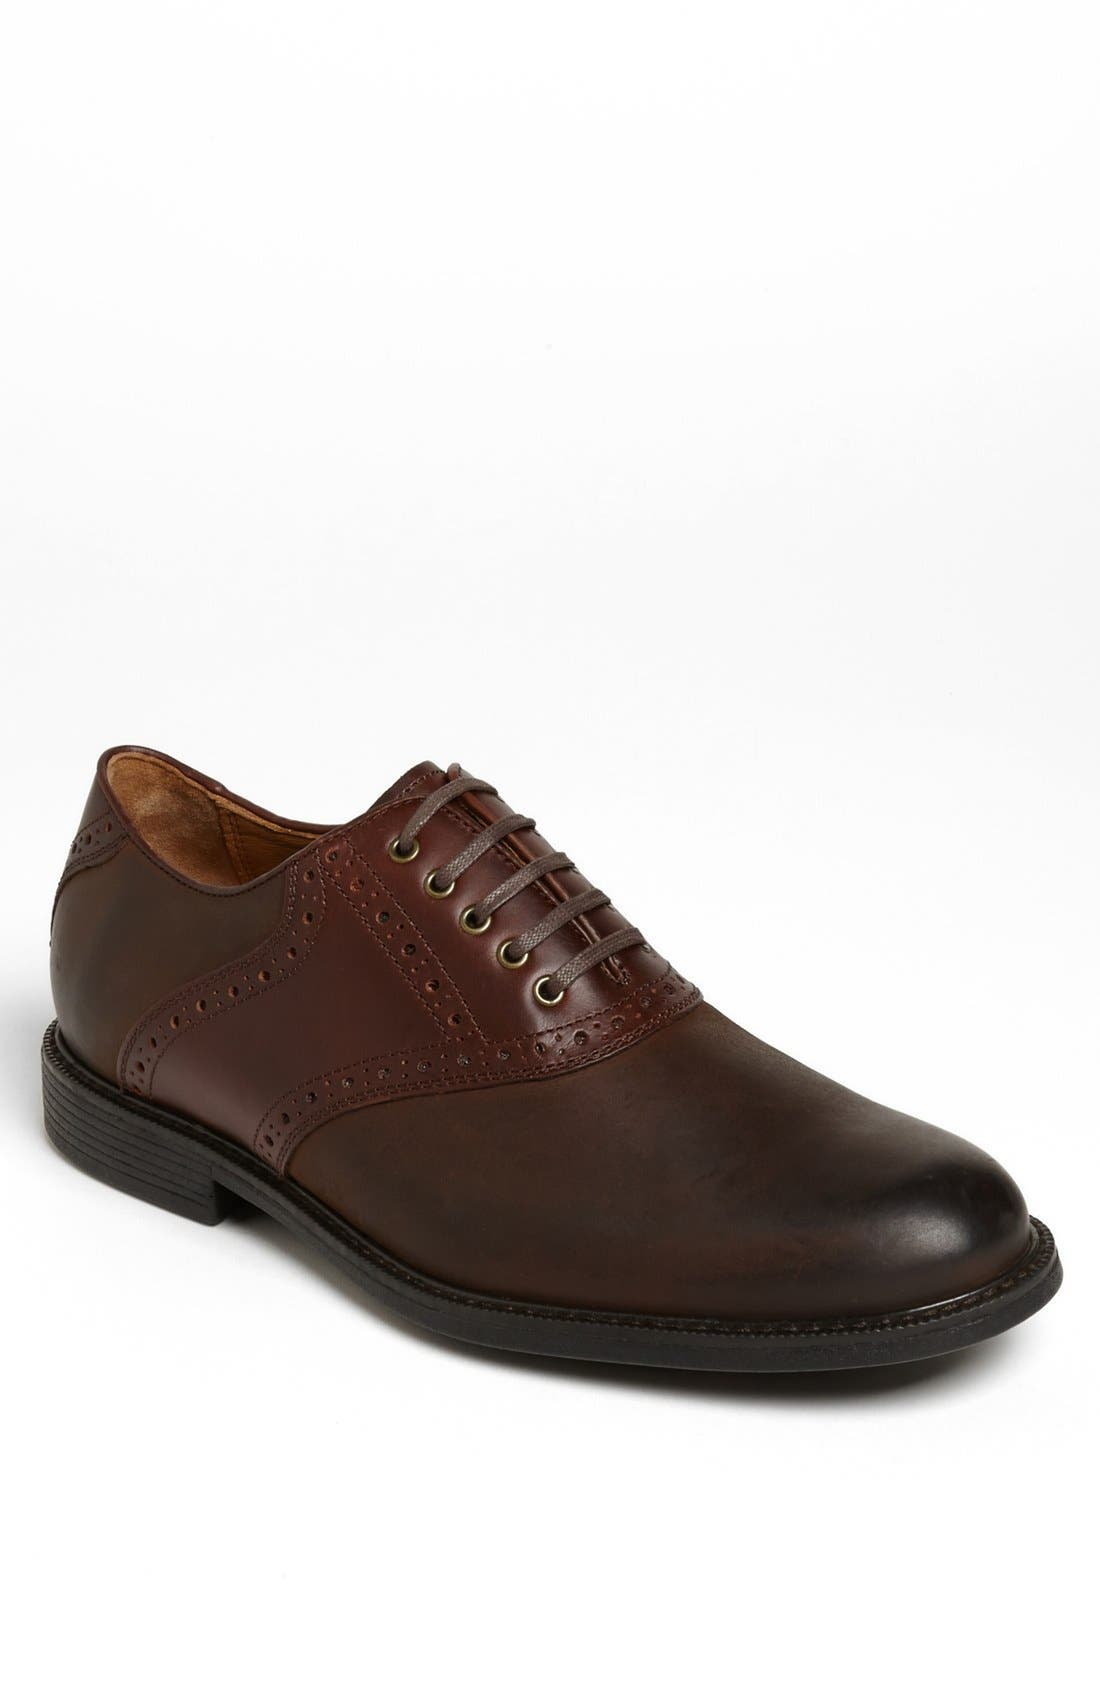 'Cardell' Waterproof Saddle Oxford,                         Main,                         color, 200